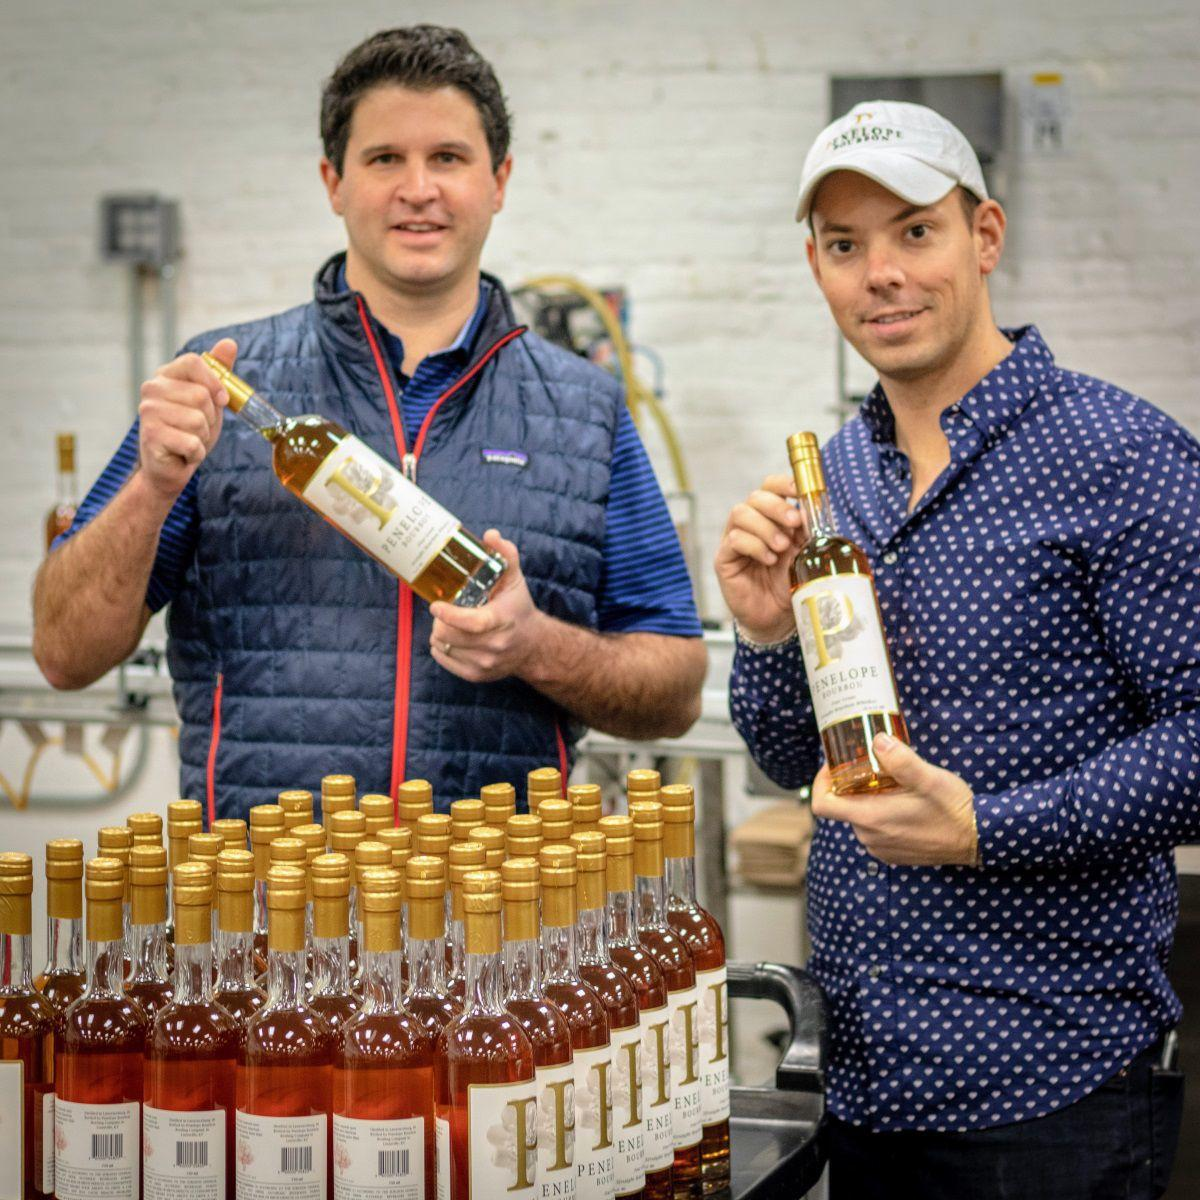 'Penelope Bourbon:' Watchung, Fair Haven men launch whiskey brand